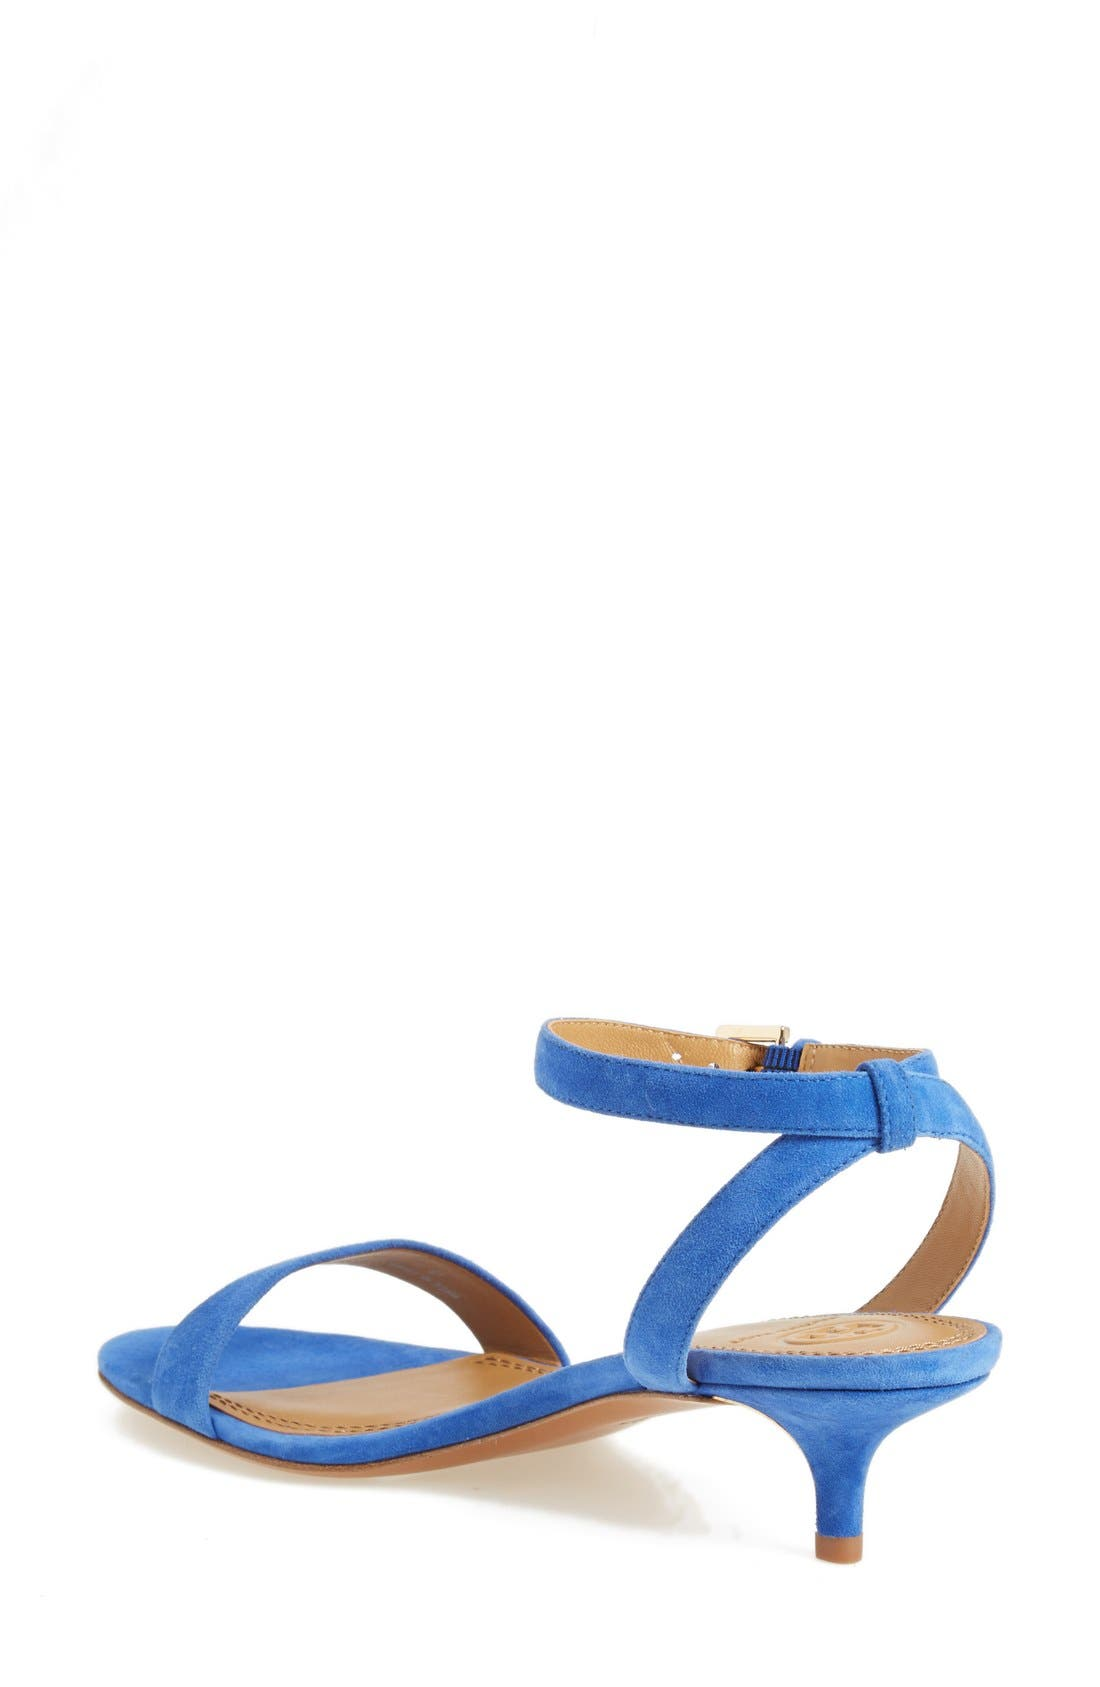 'Elana' Ankle Strap Sandal,                             Alternate thumbnail 2, color,                             Jelly Blue Suede